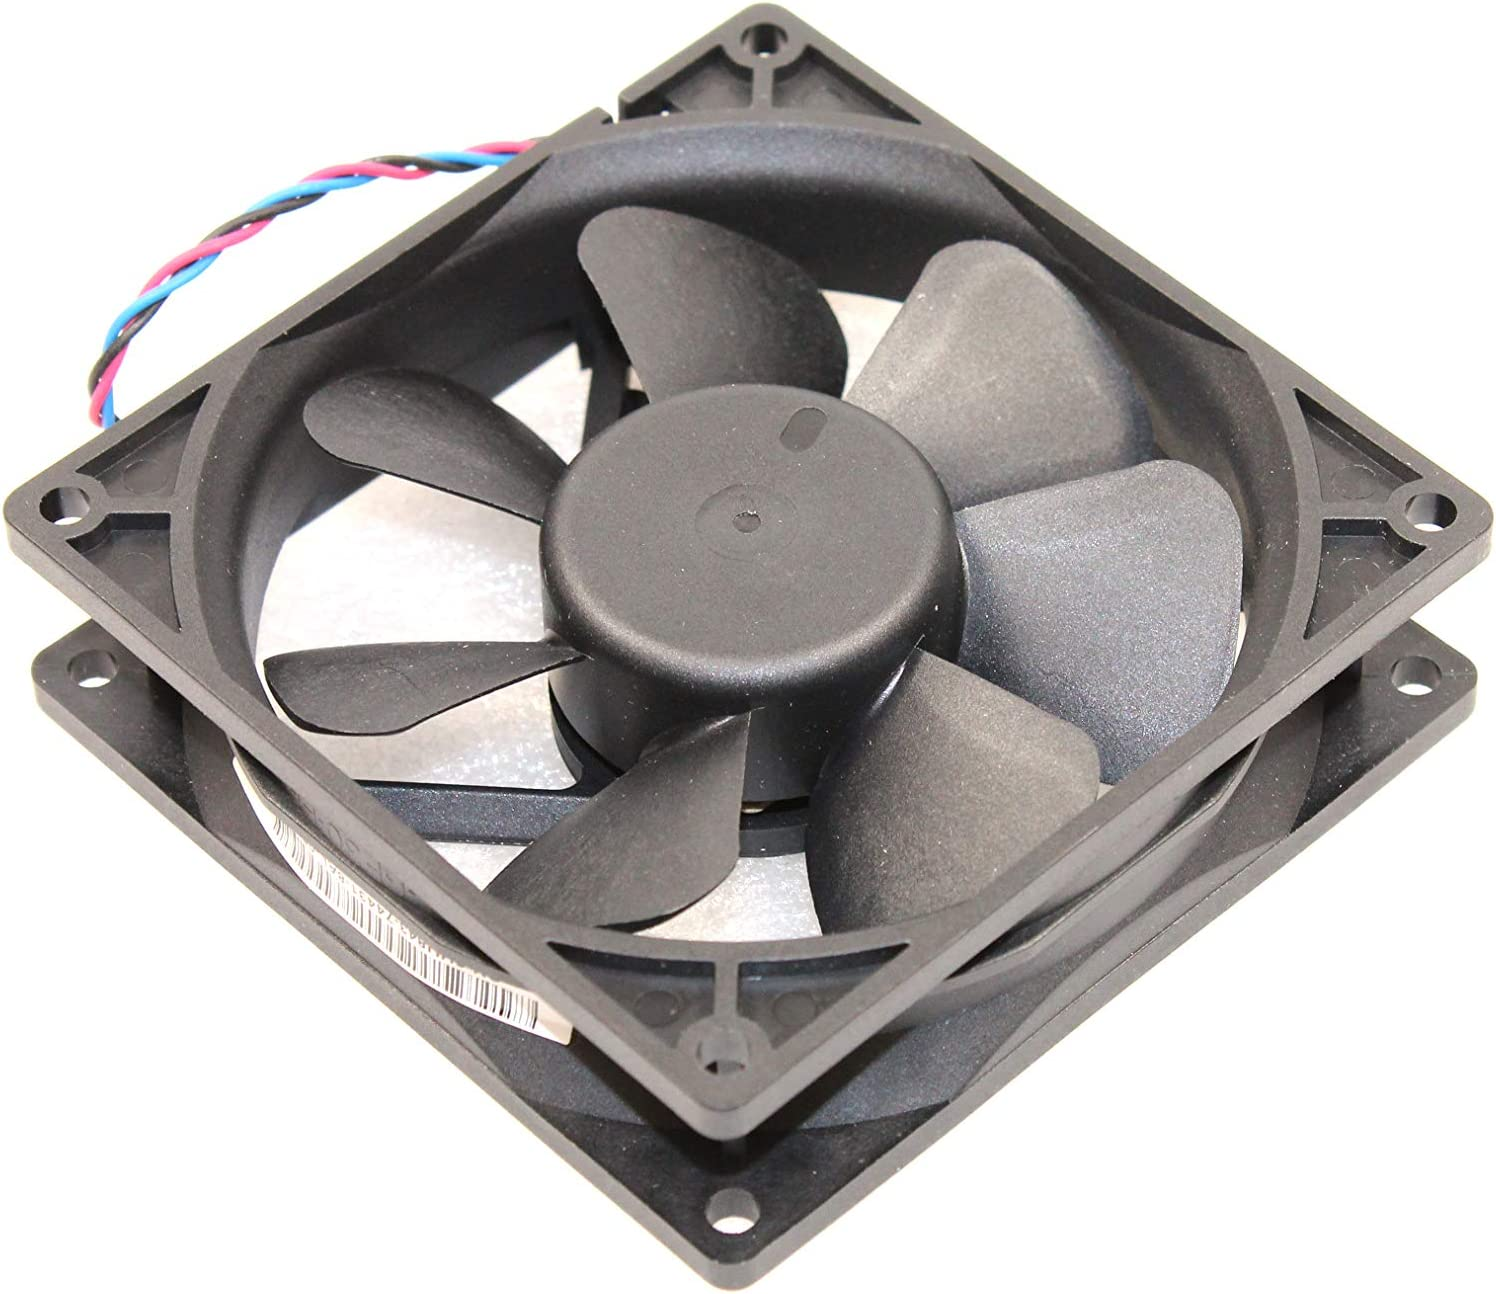 *NEW* GENUINE DELL Case Cooling Fan X755M fits Sunon KD1209PTS2 Inspiron 530 531